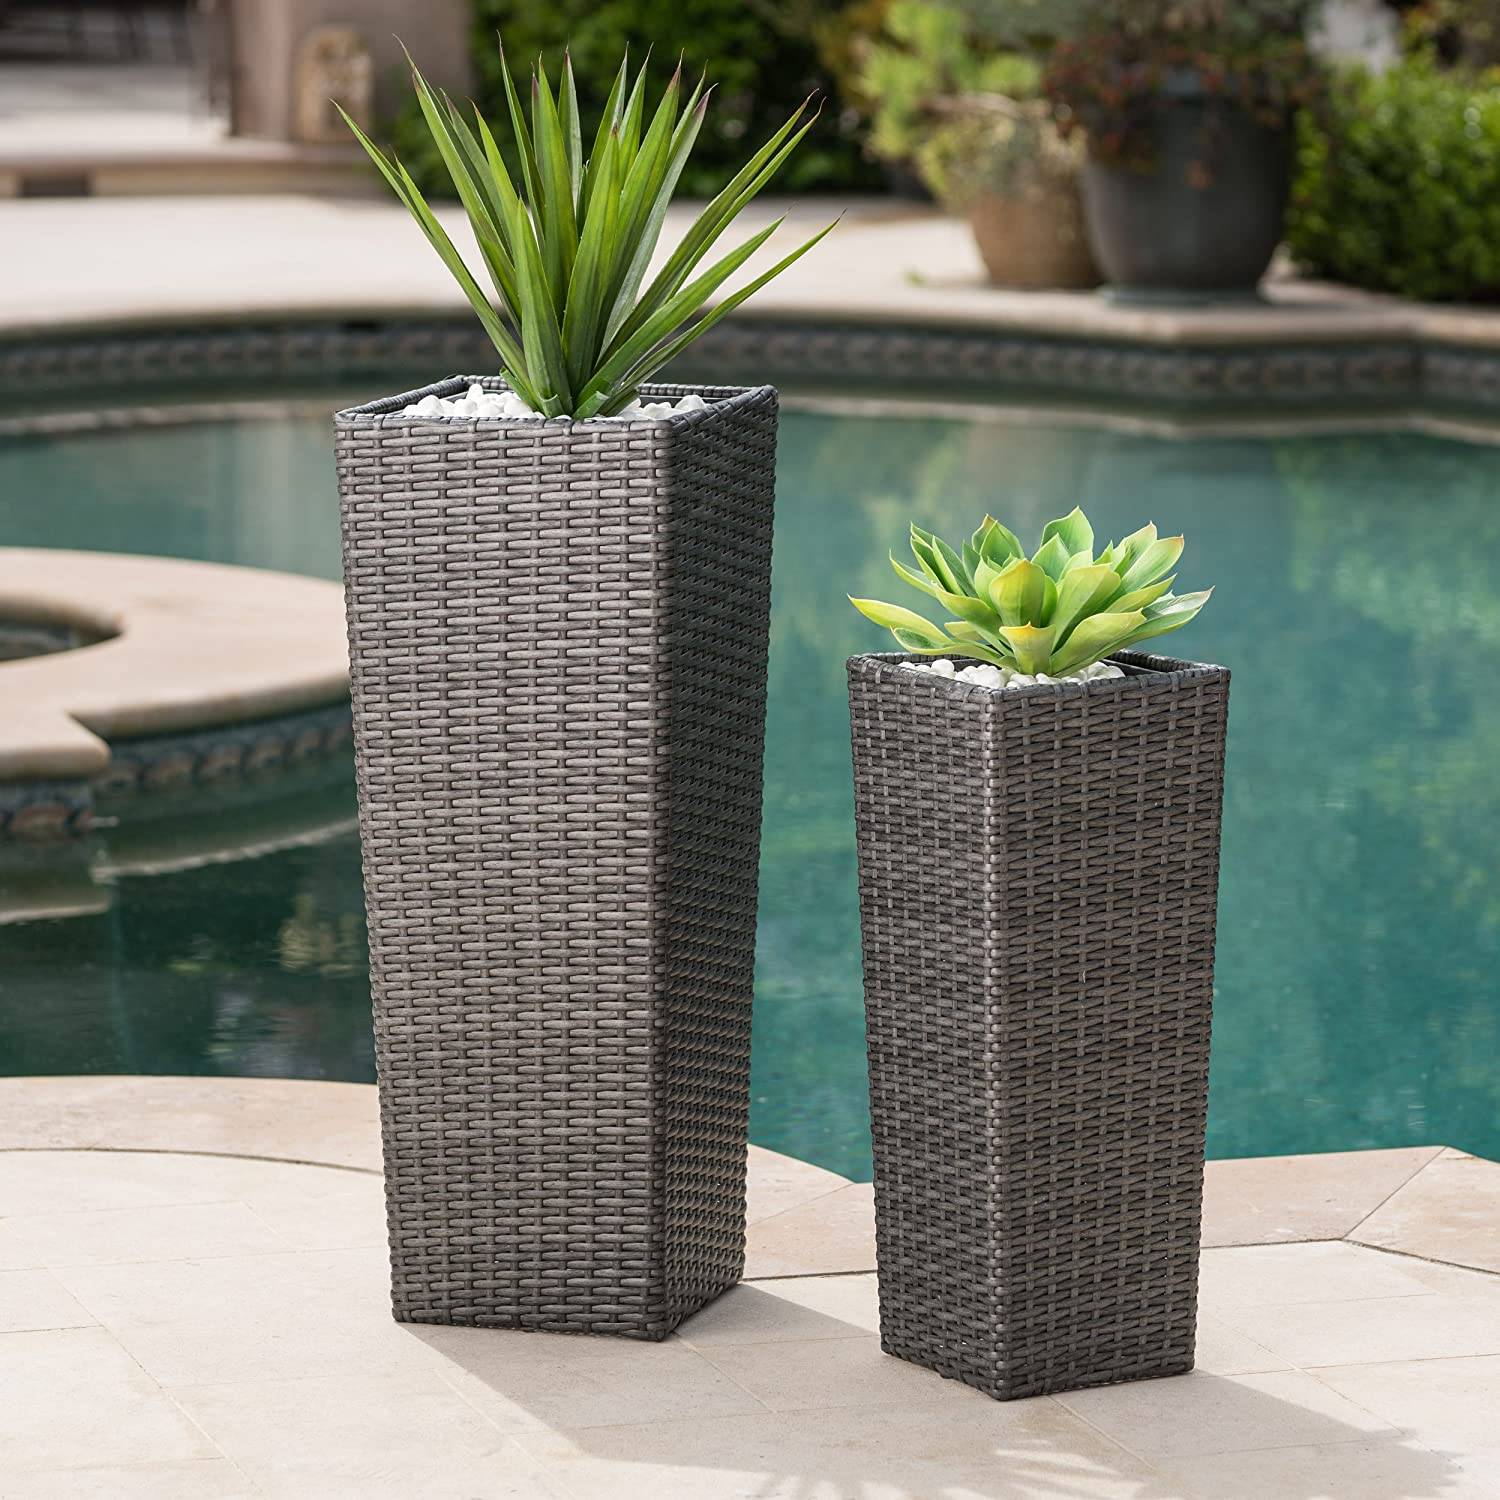 Eden Outdoor Wicker Flower Pots Set of 2 Grey